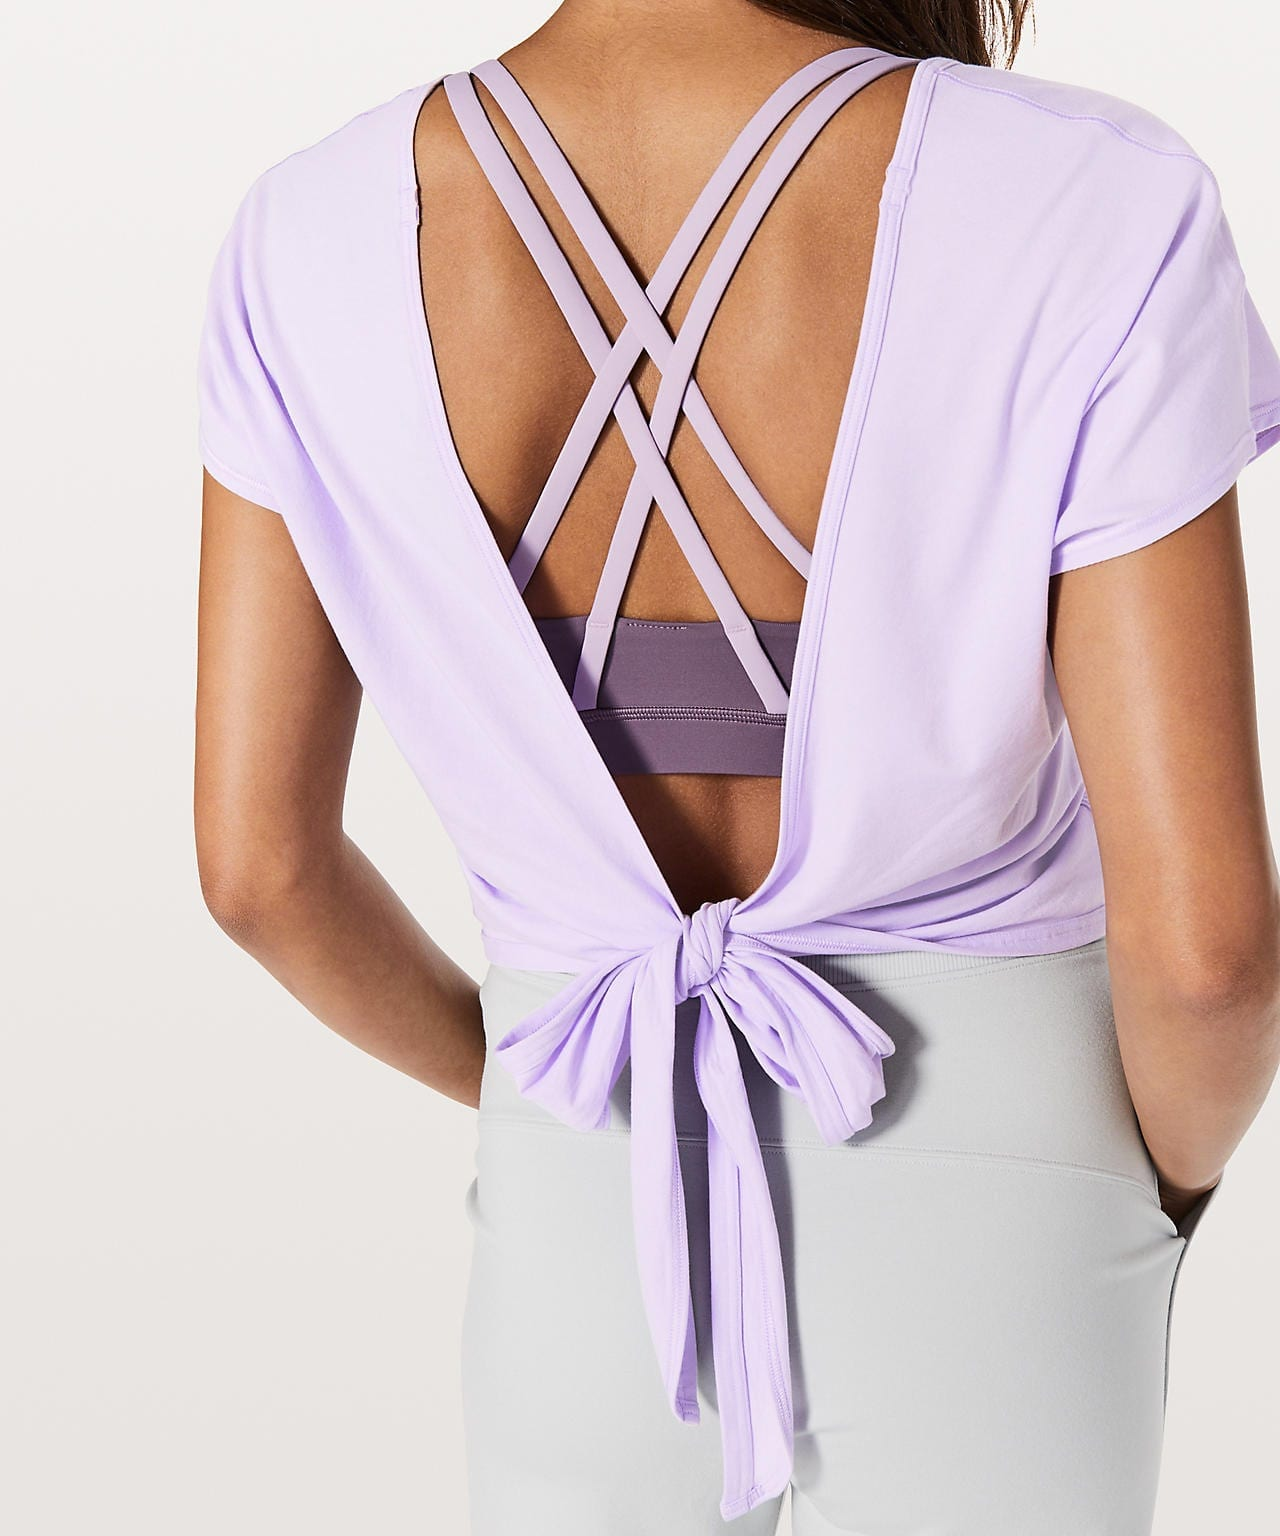 It's A Tie Tee - Sheer Violet